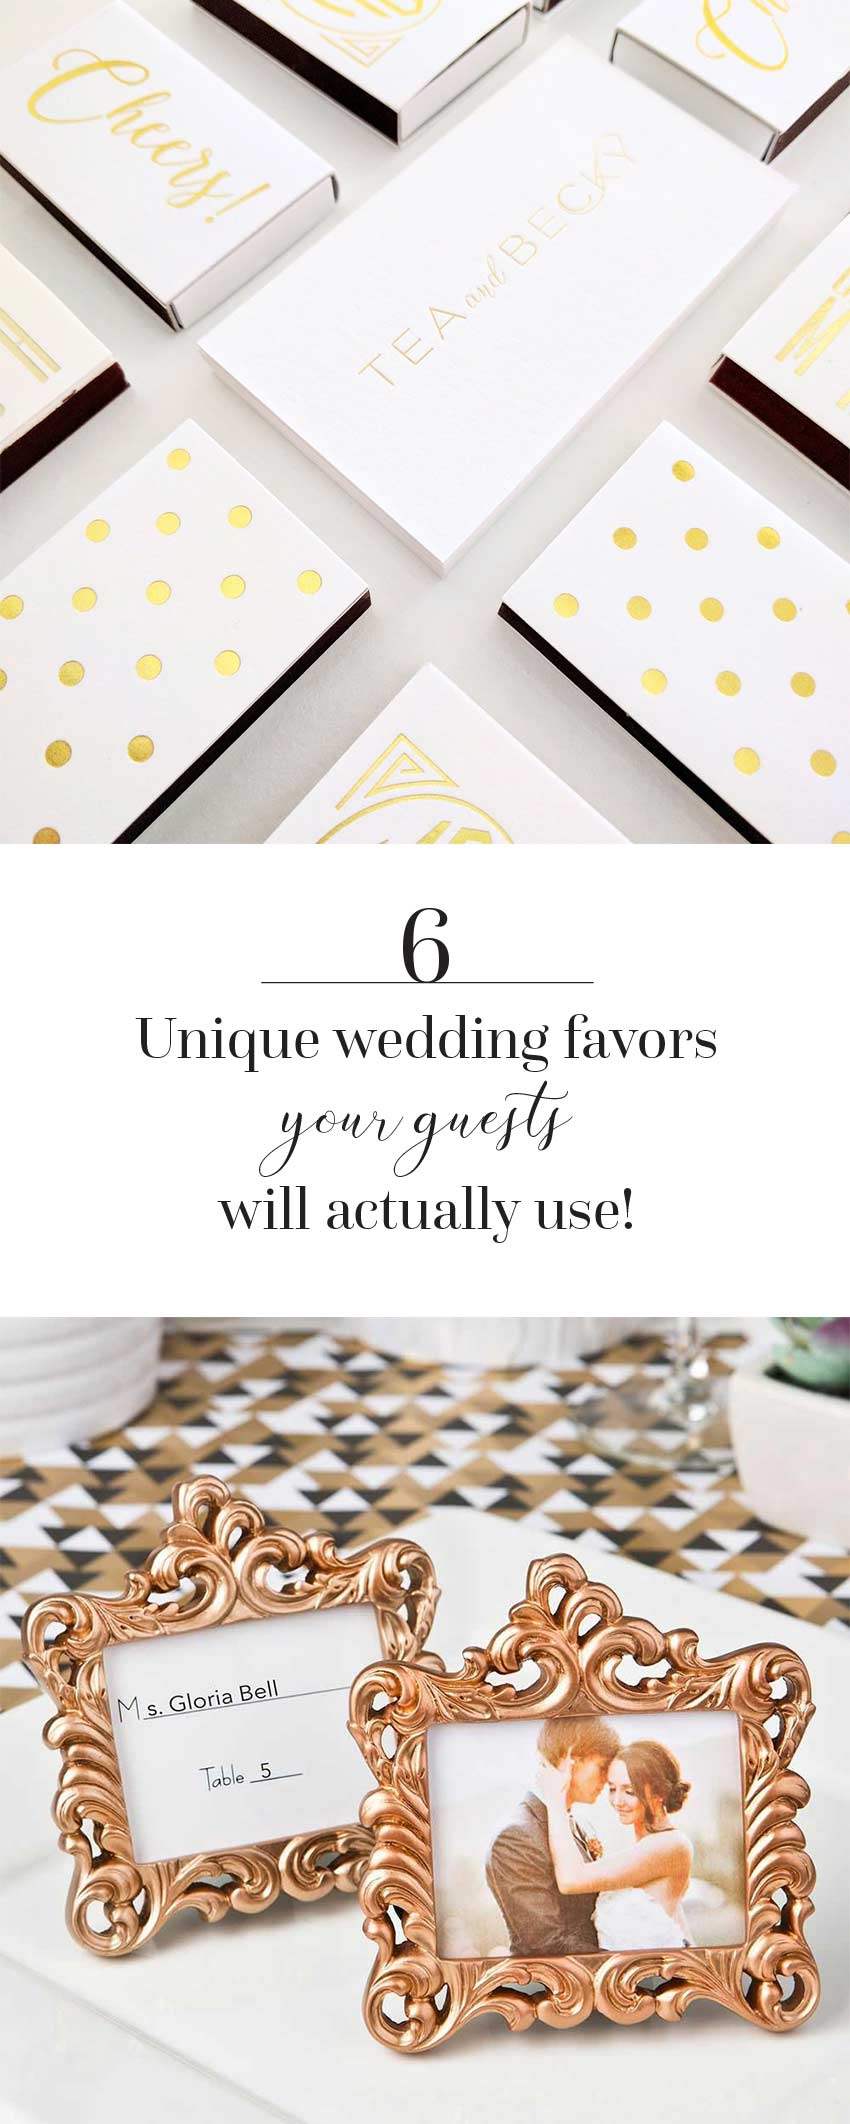 6 Unique Wedding Favors That Your Guests Will Actually Use